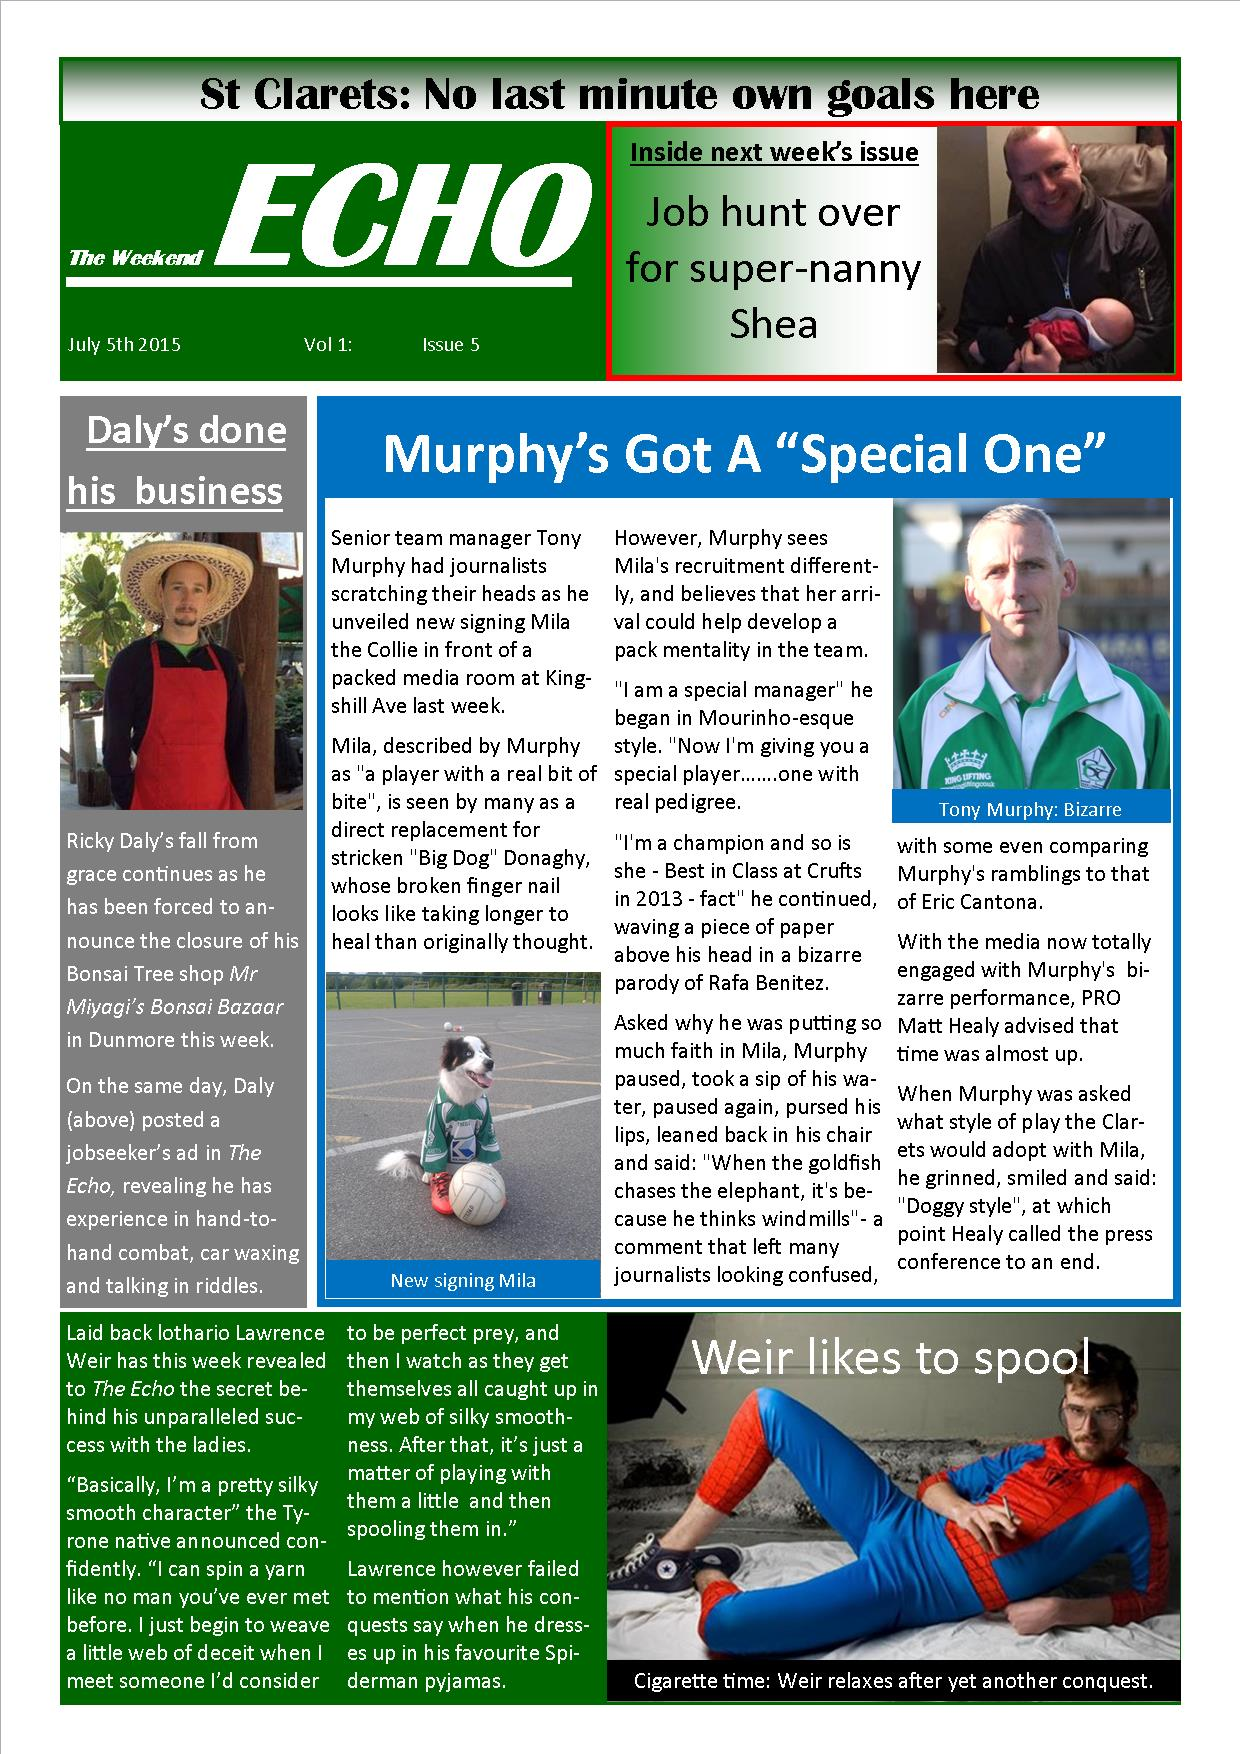 Weekend Echo Issue 5. The weekly newsletter from St Clarets GFC in London. London's best GAA club. A Gaelic football club to be proud of.